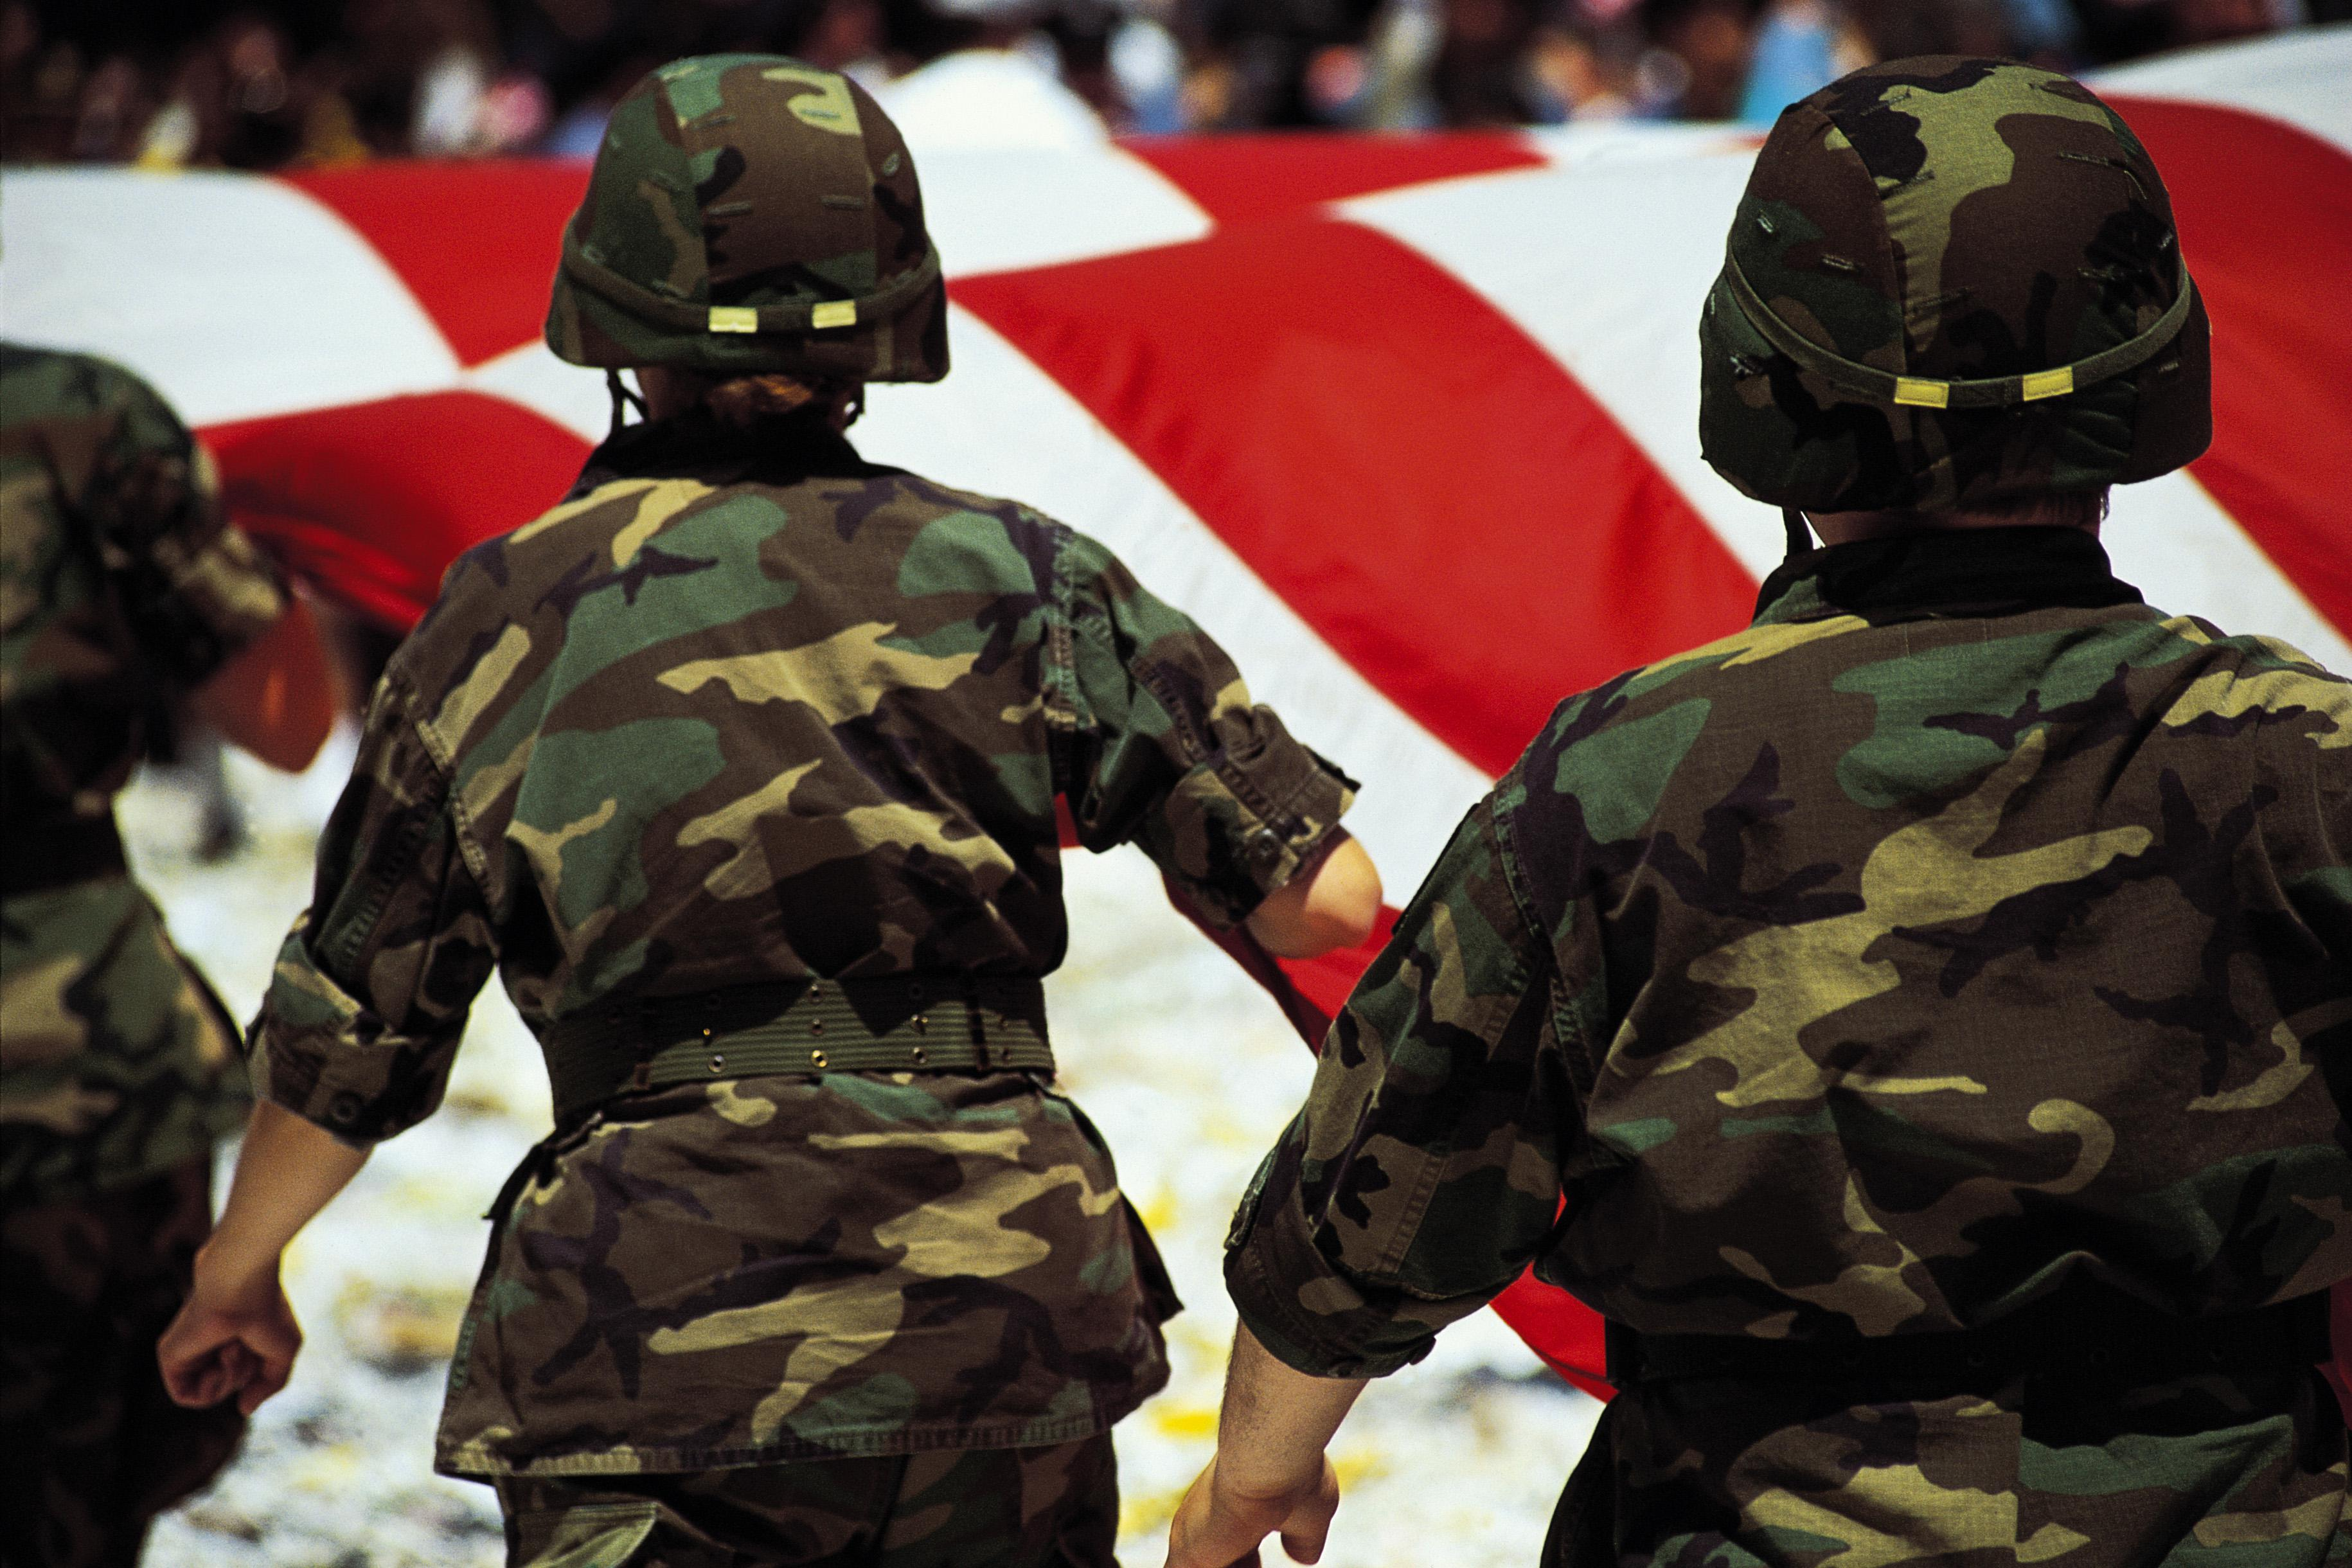 Soldiers with American flag in parade